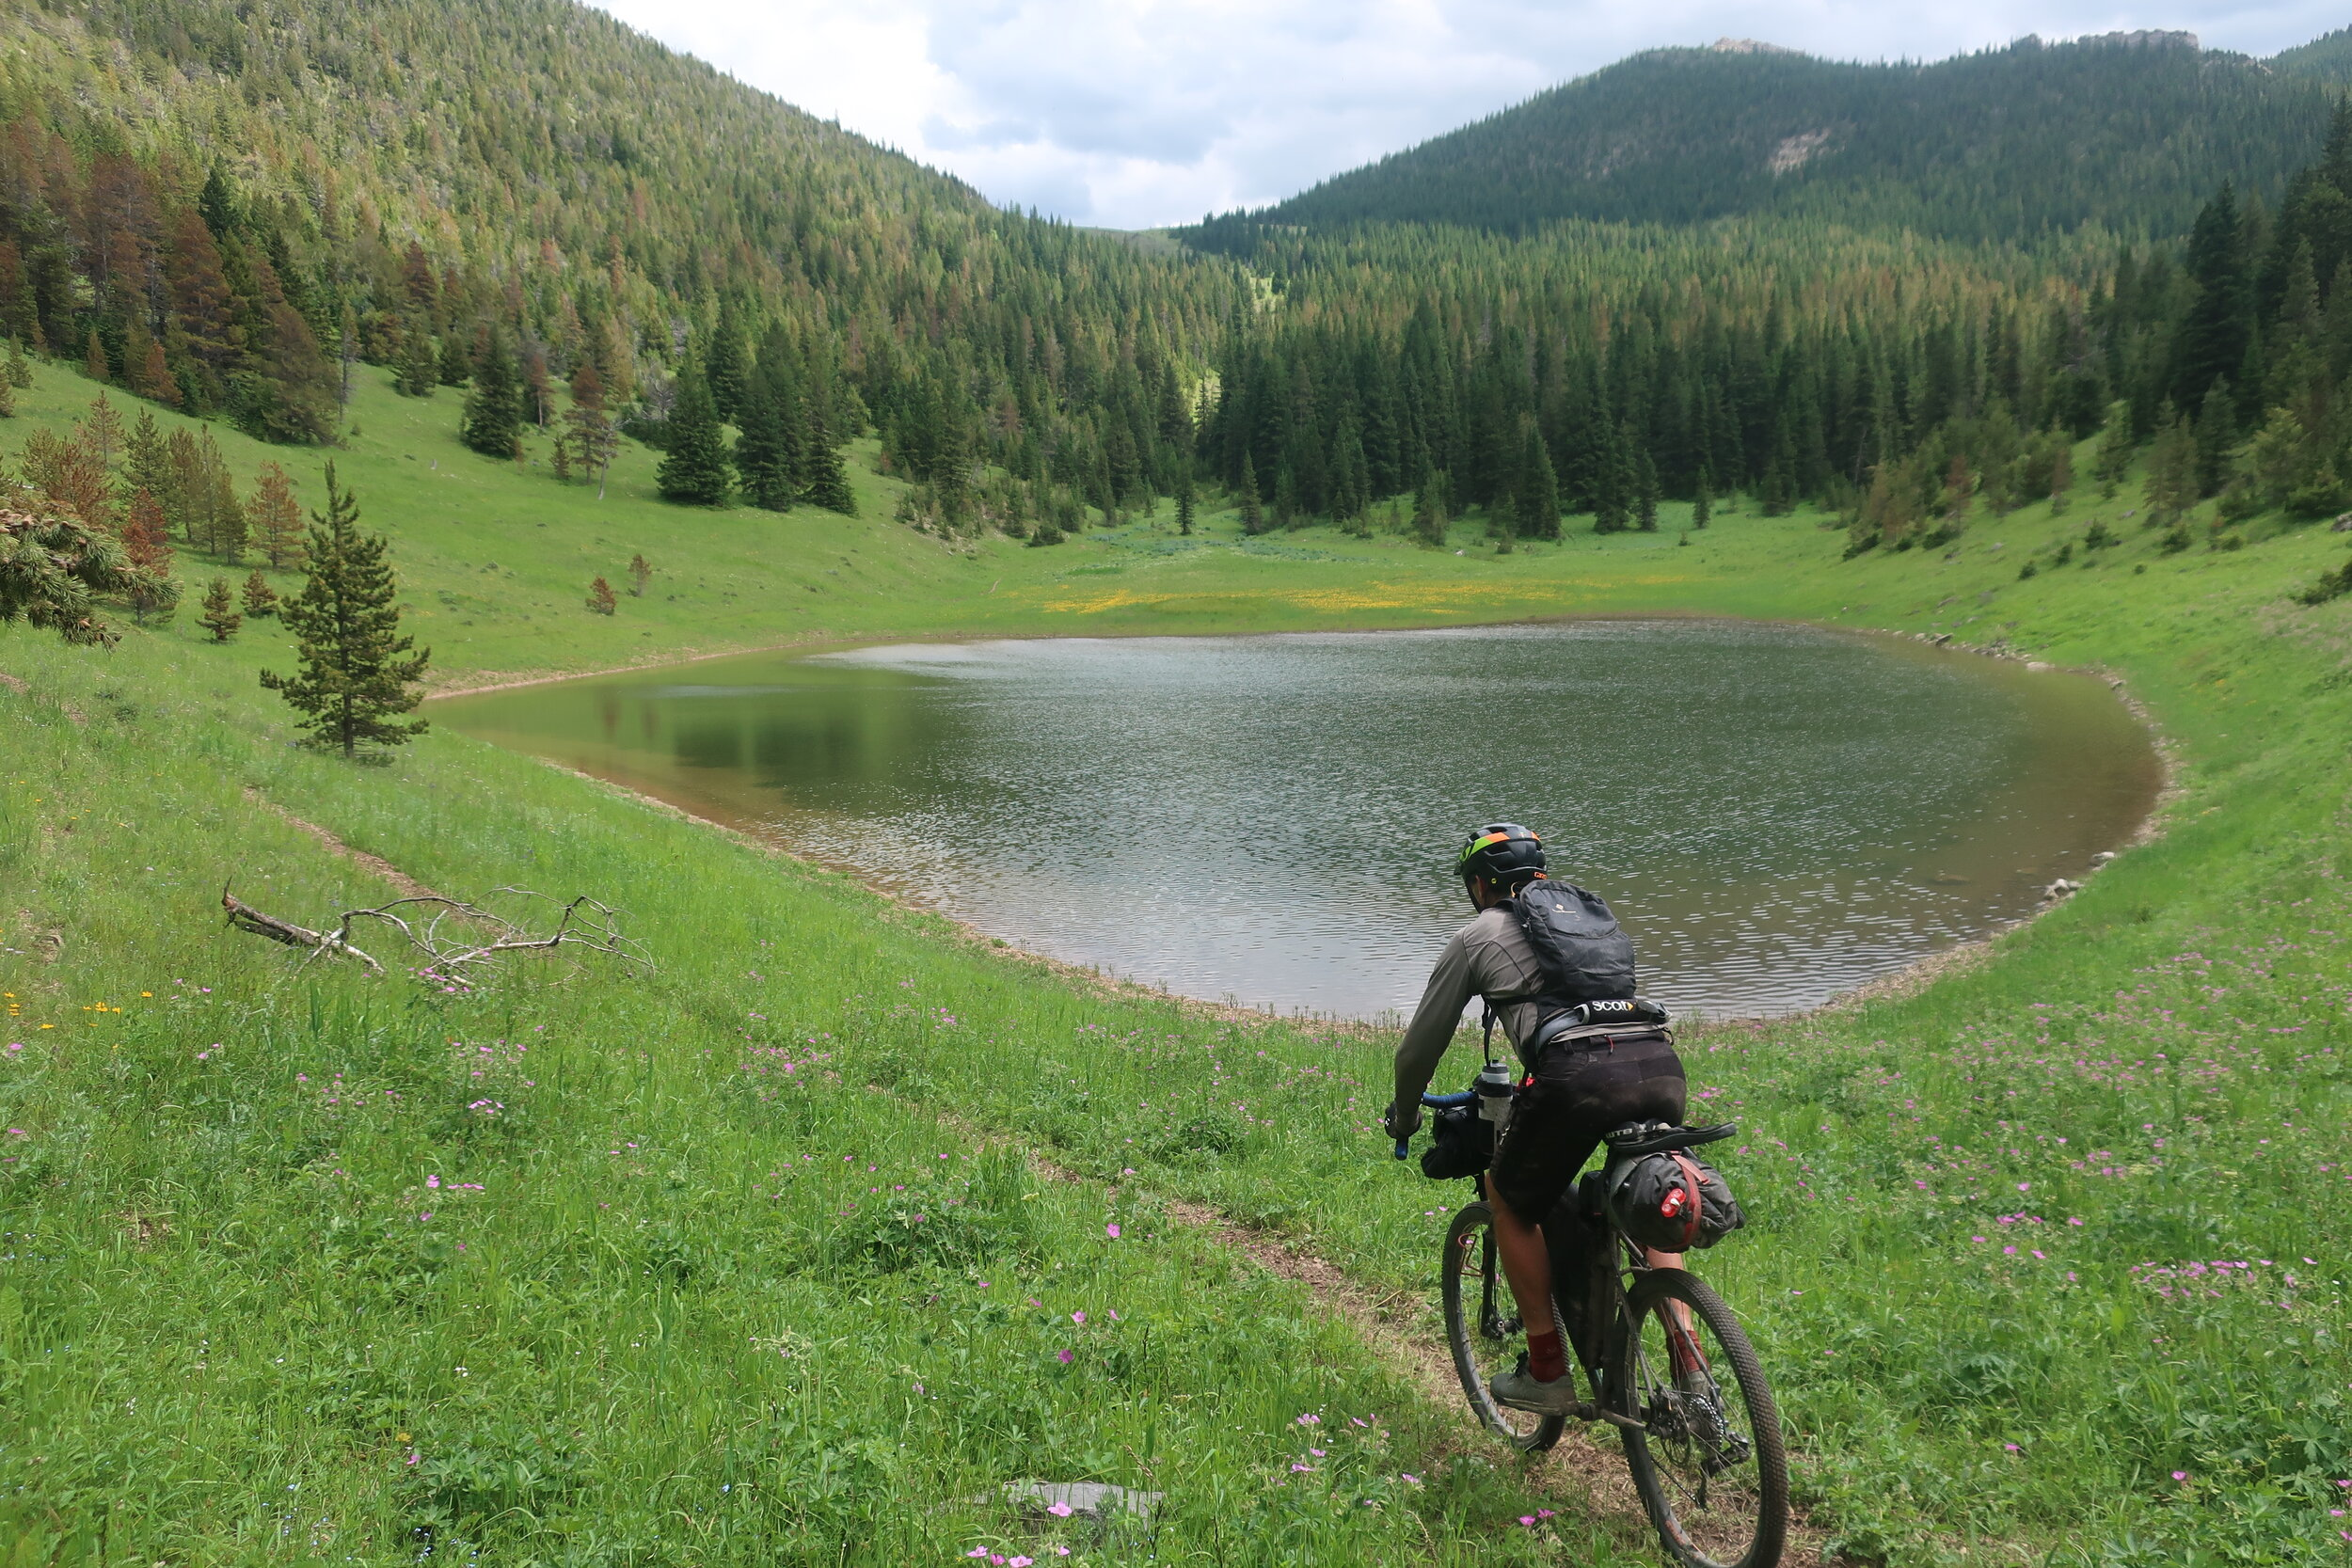 High country single track!